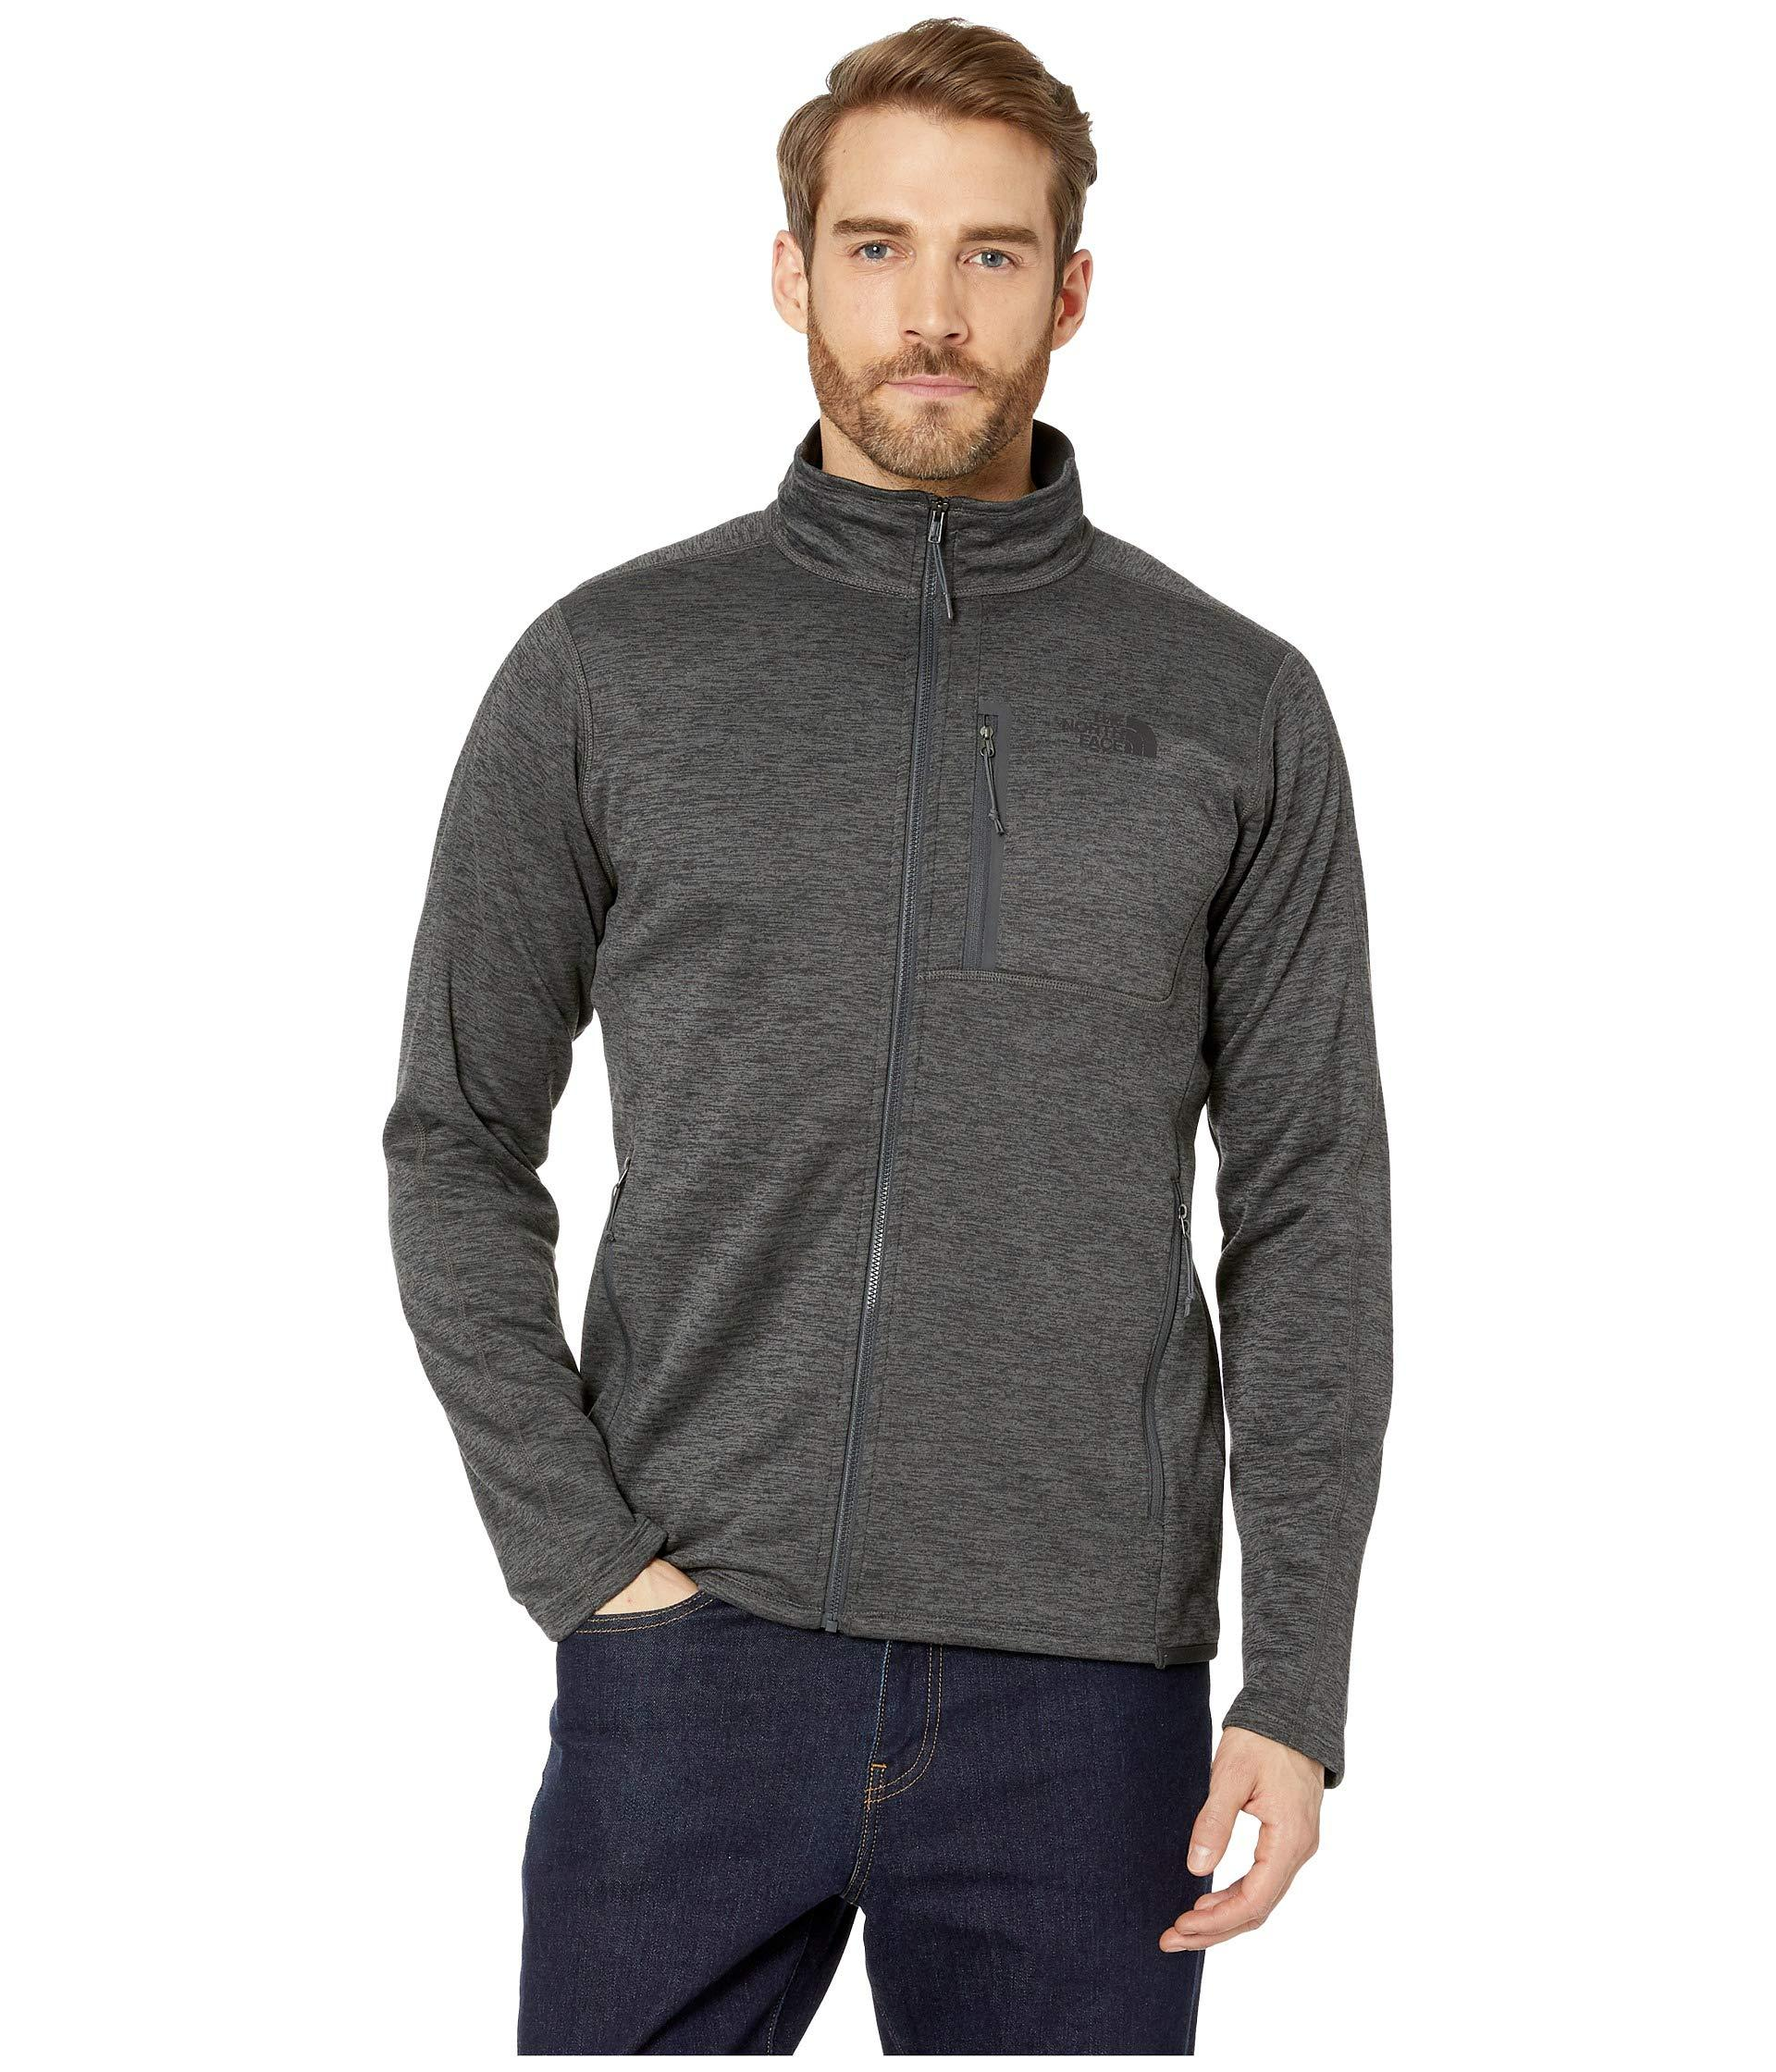 b8cfa96ca Men's Gray Canyonlands Full Zip